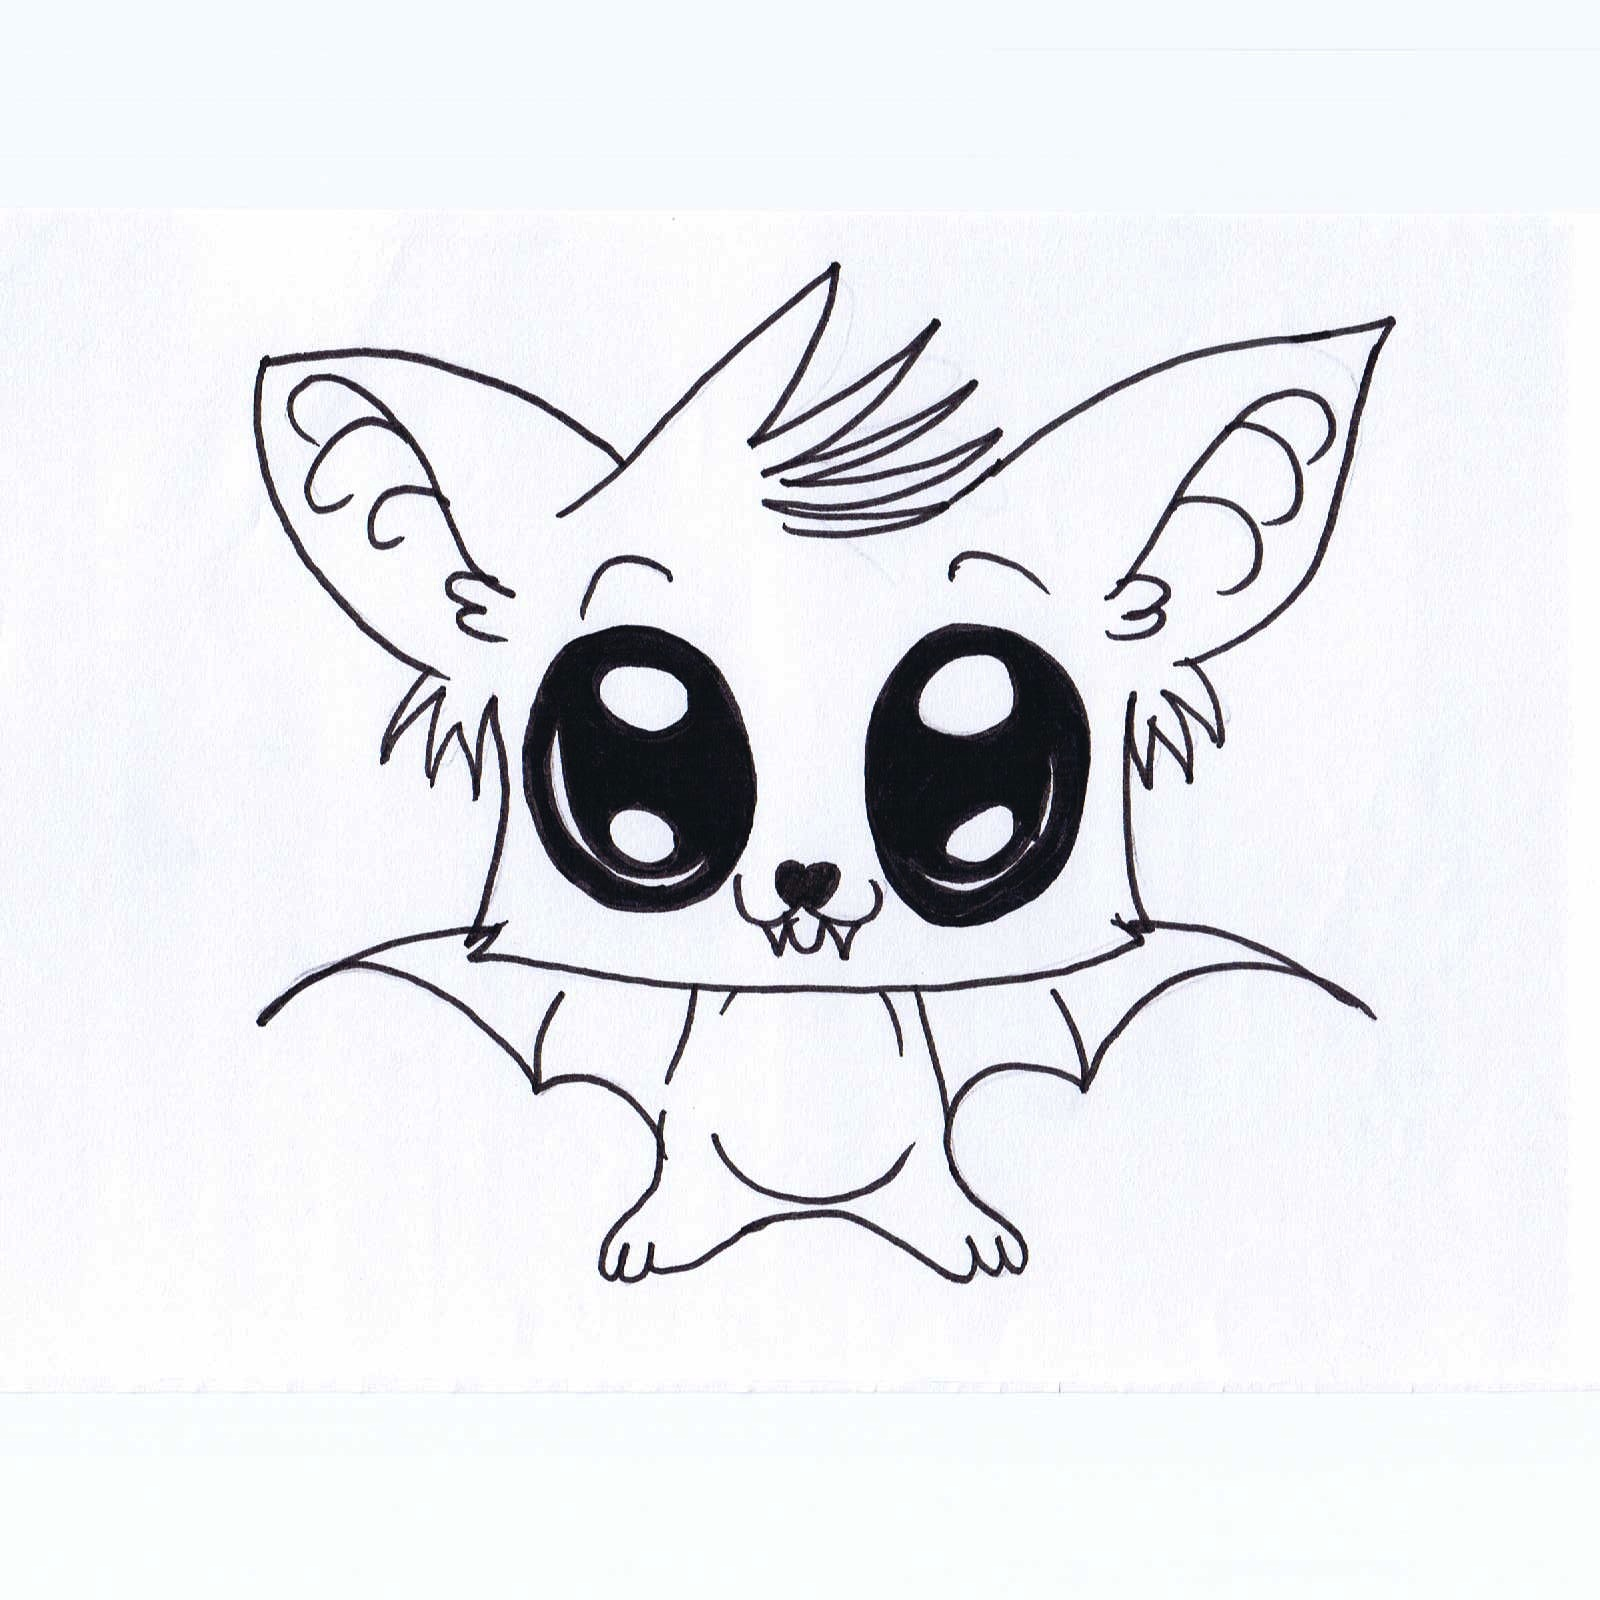 Cute Animal Drawings - Cliparts.co